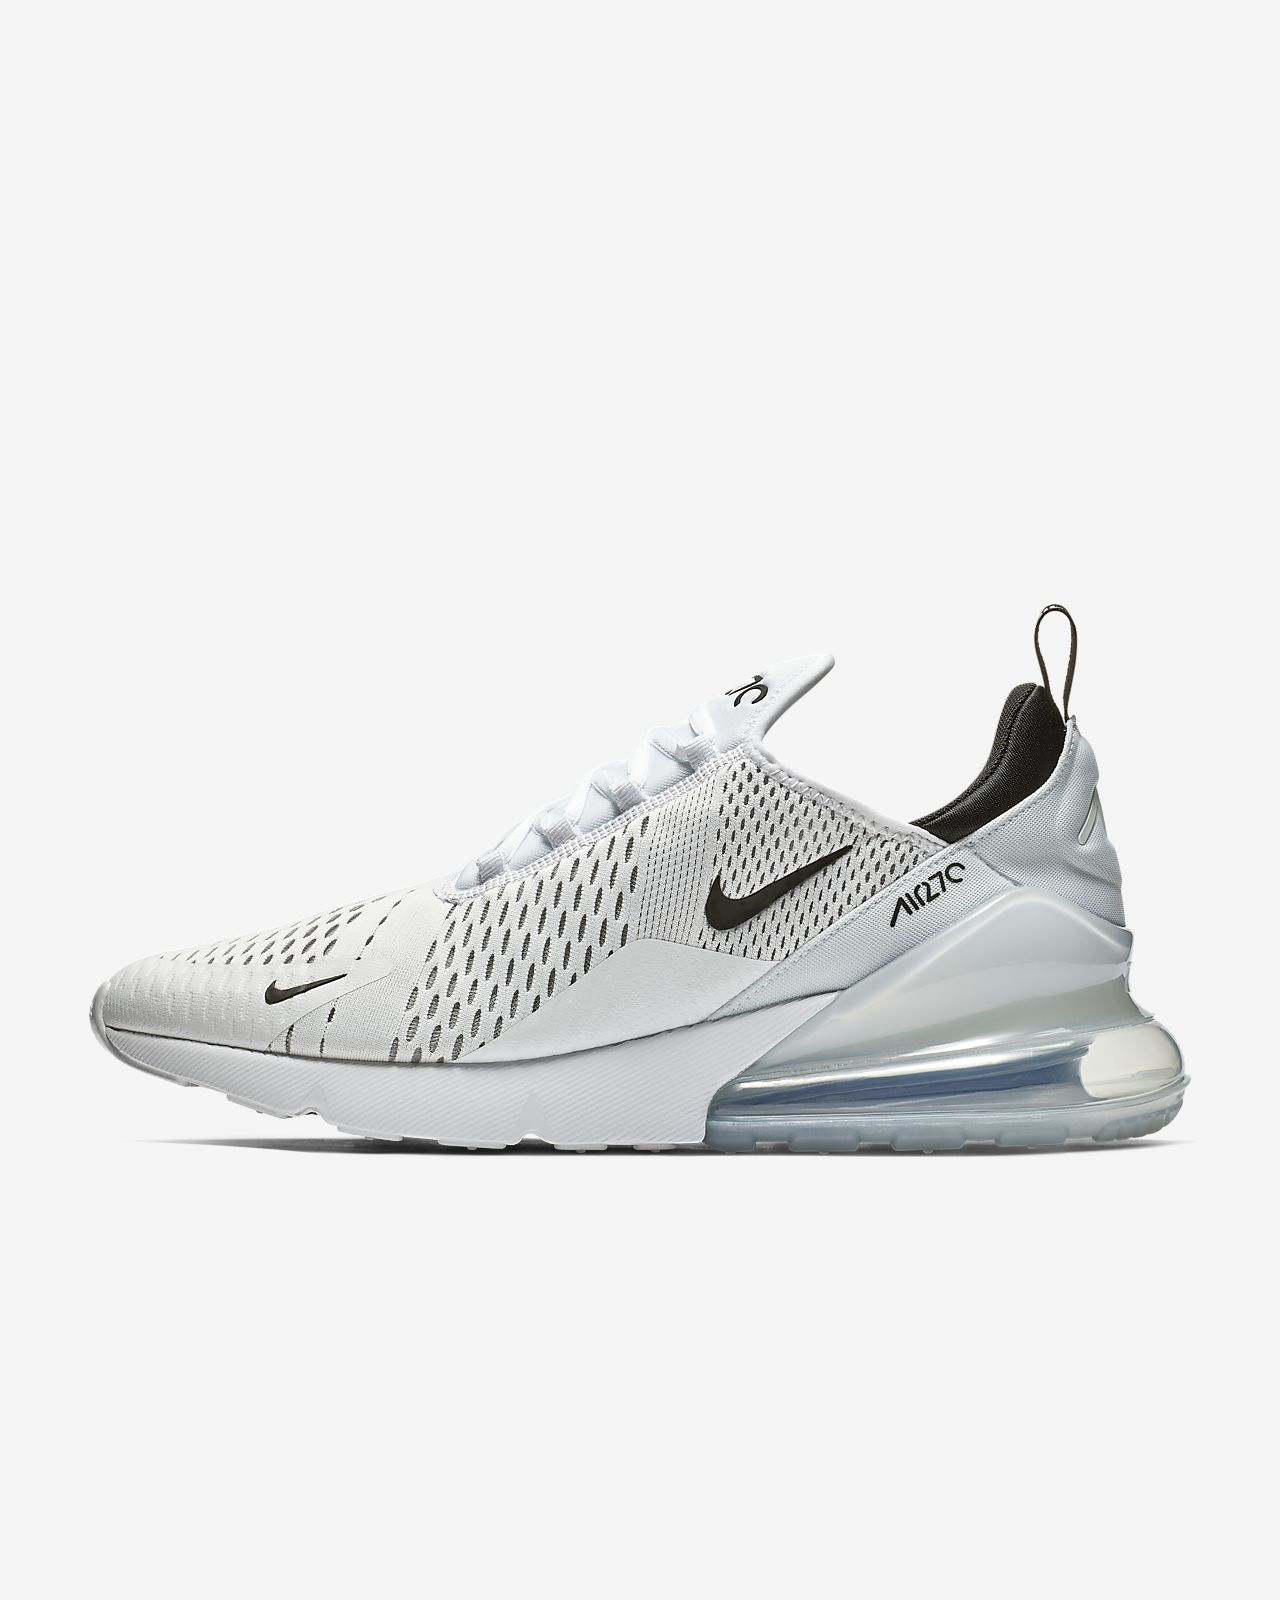 promo code cf90b c9b02 Nike Air Max 270 Men's Shoe. Nike.com GB